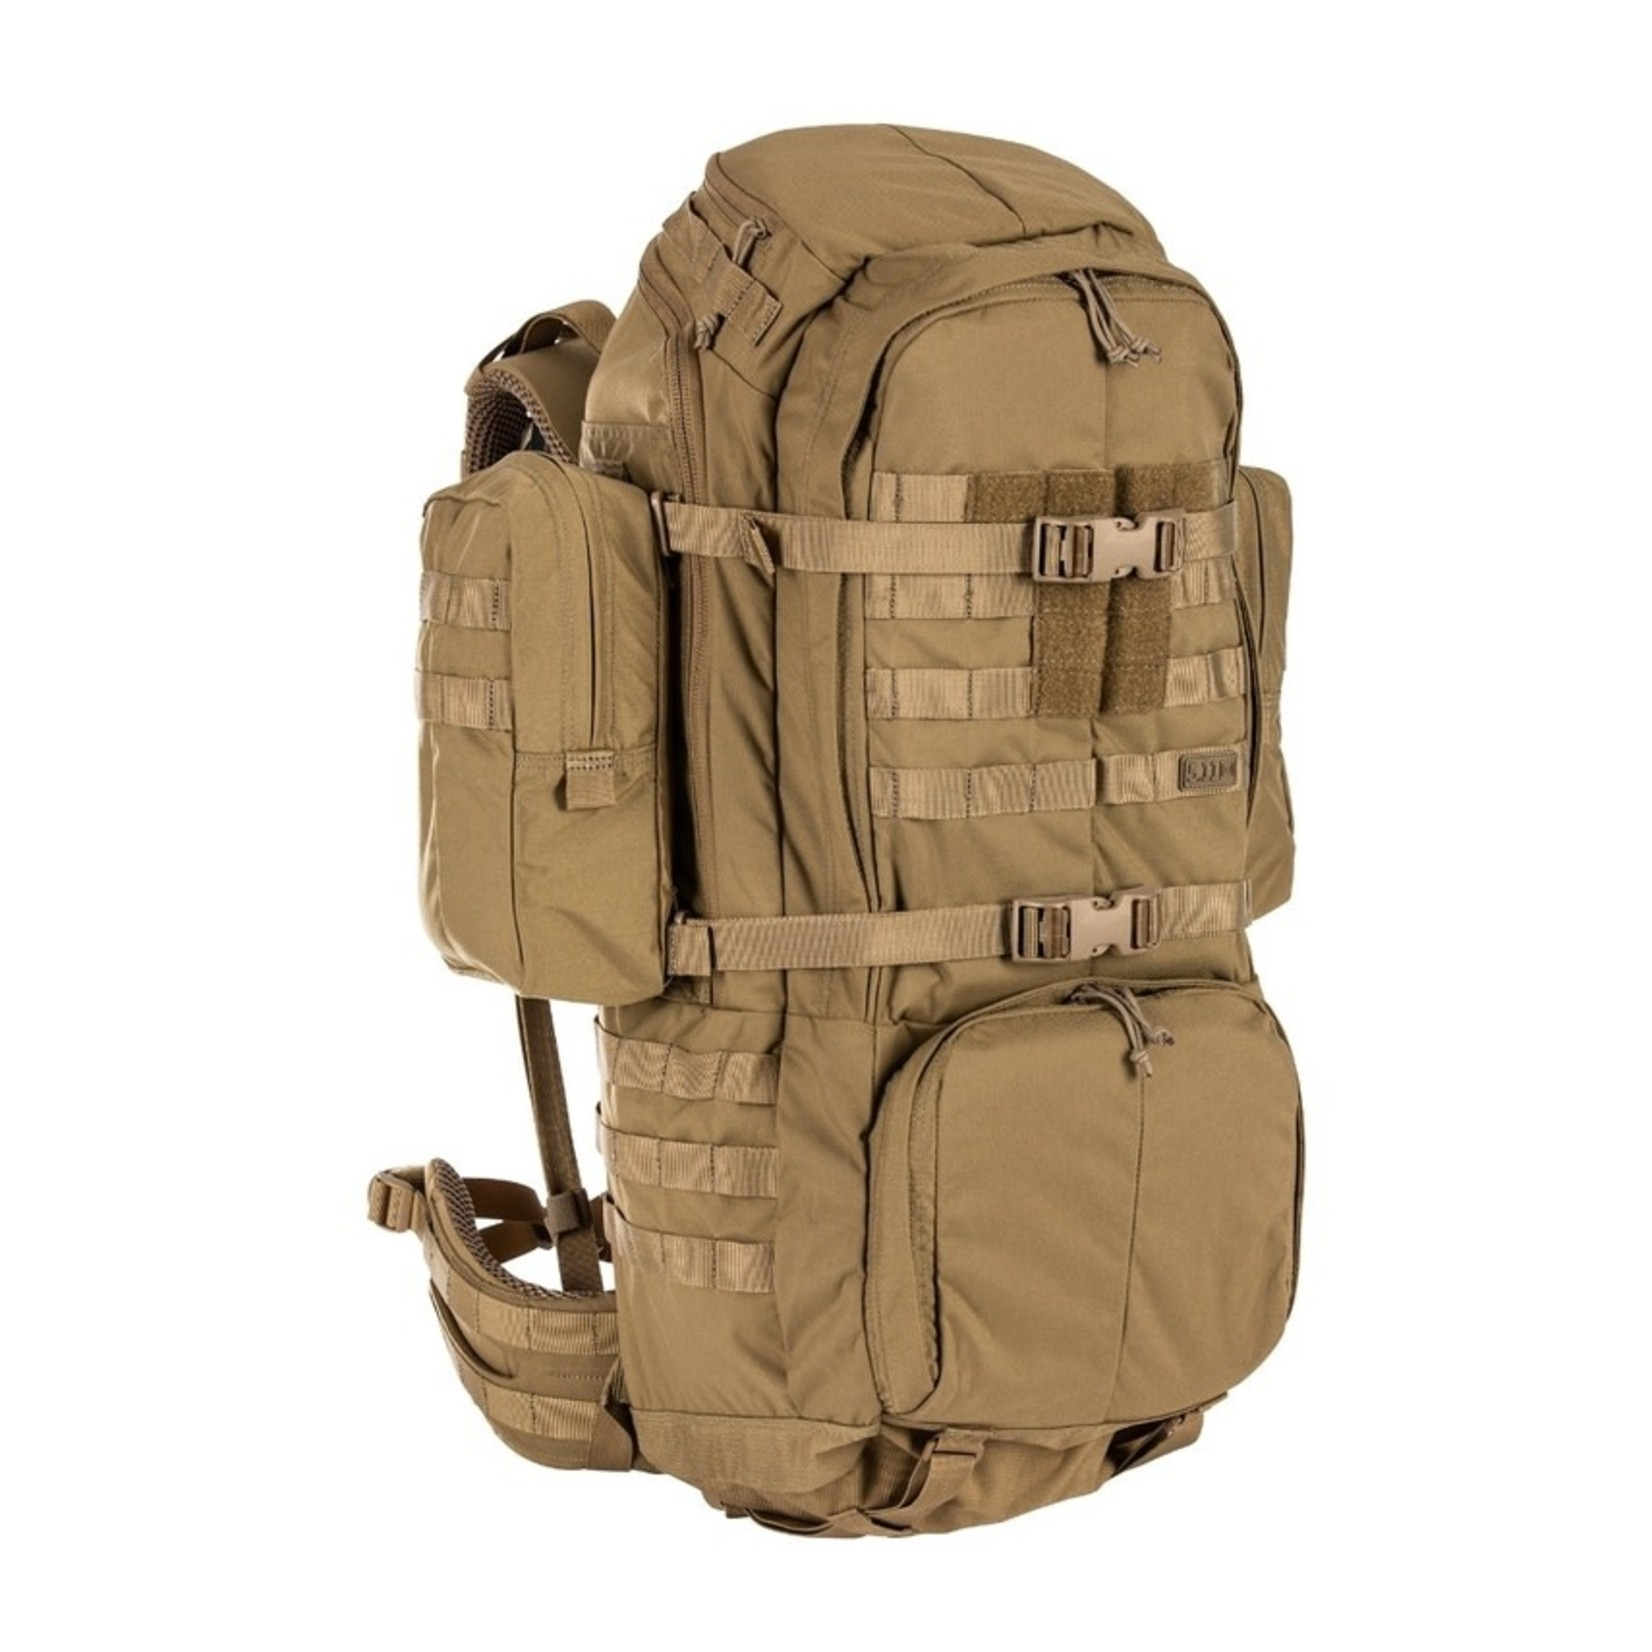 5.11 Tactical 5.11 Rush 100 Backpack 60L